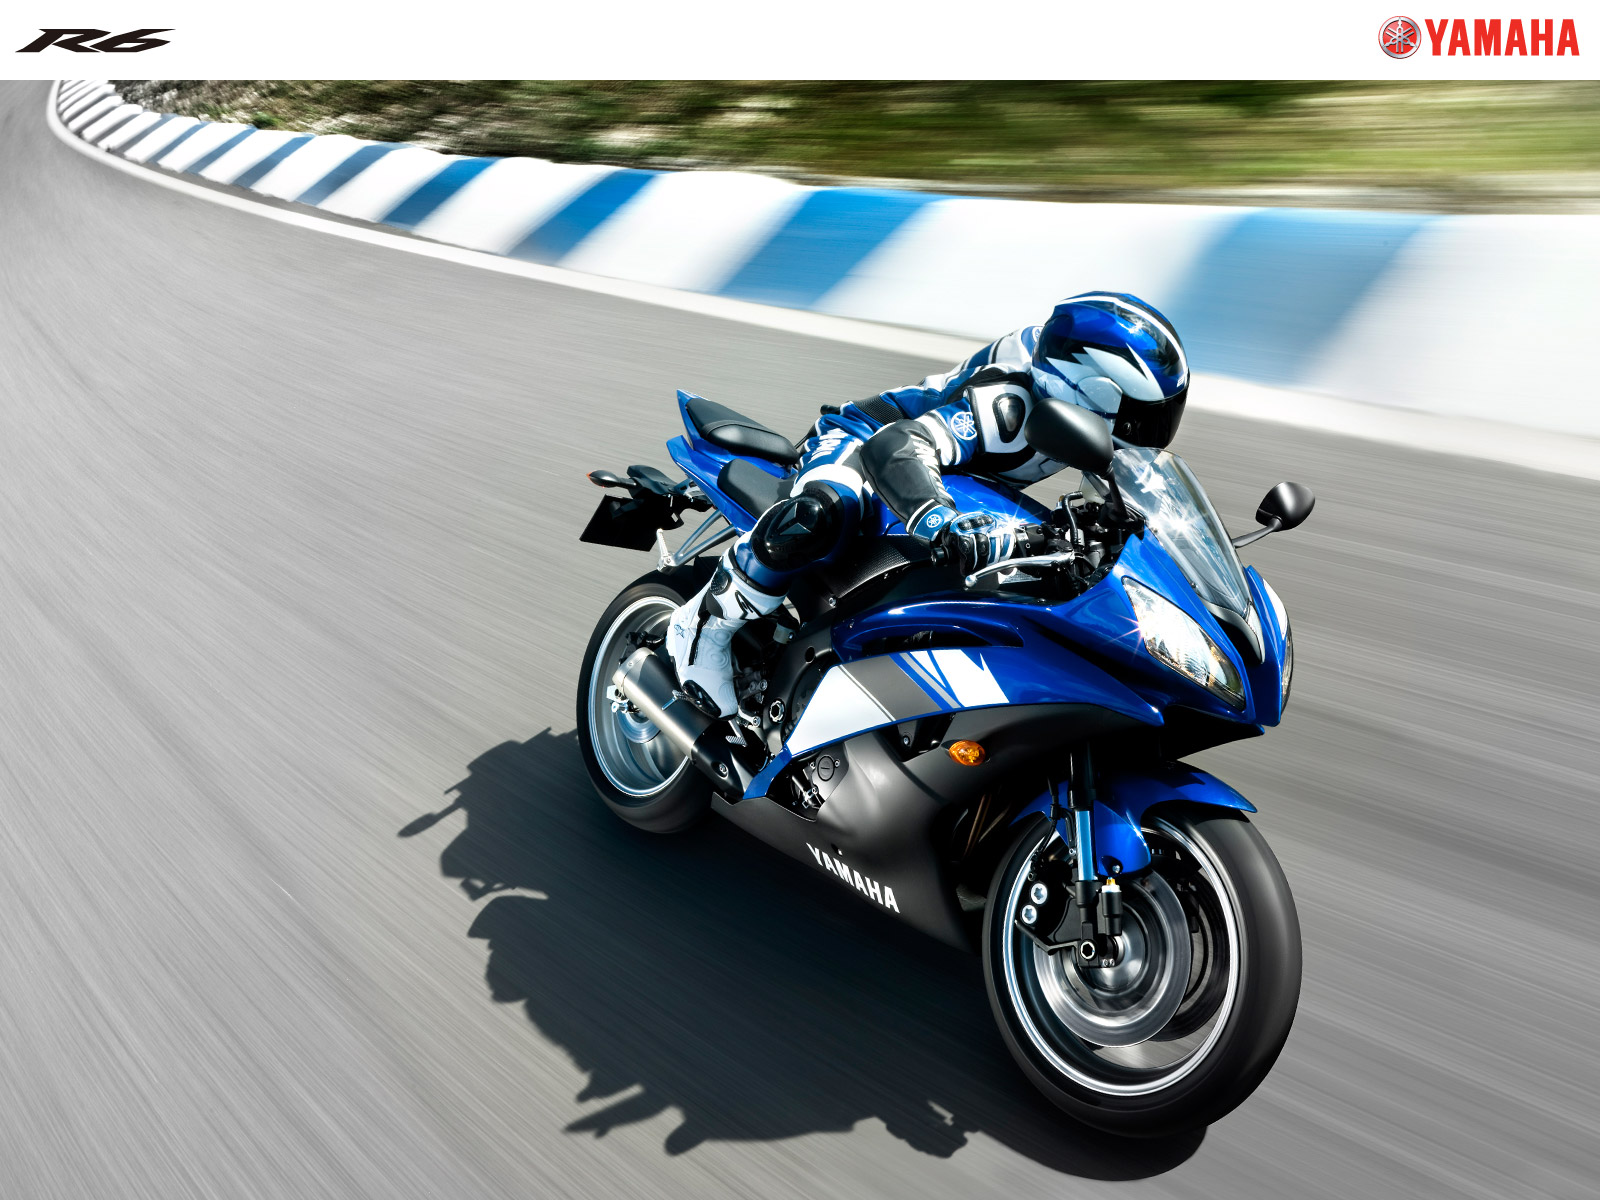 Motor Yamaha YZF R6 | Free Desktop Wallpapers For Widescreen, HD And Mobile